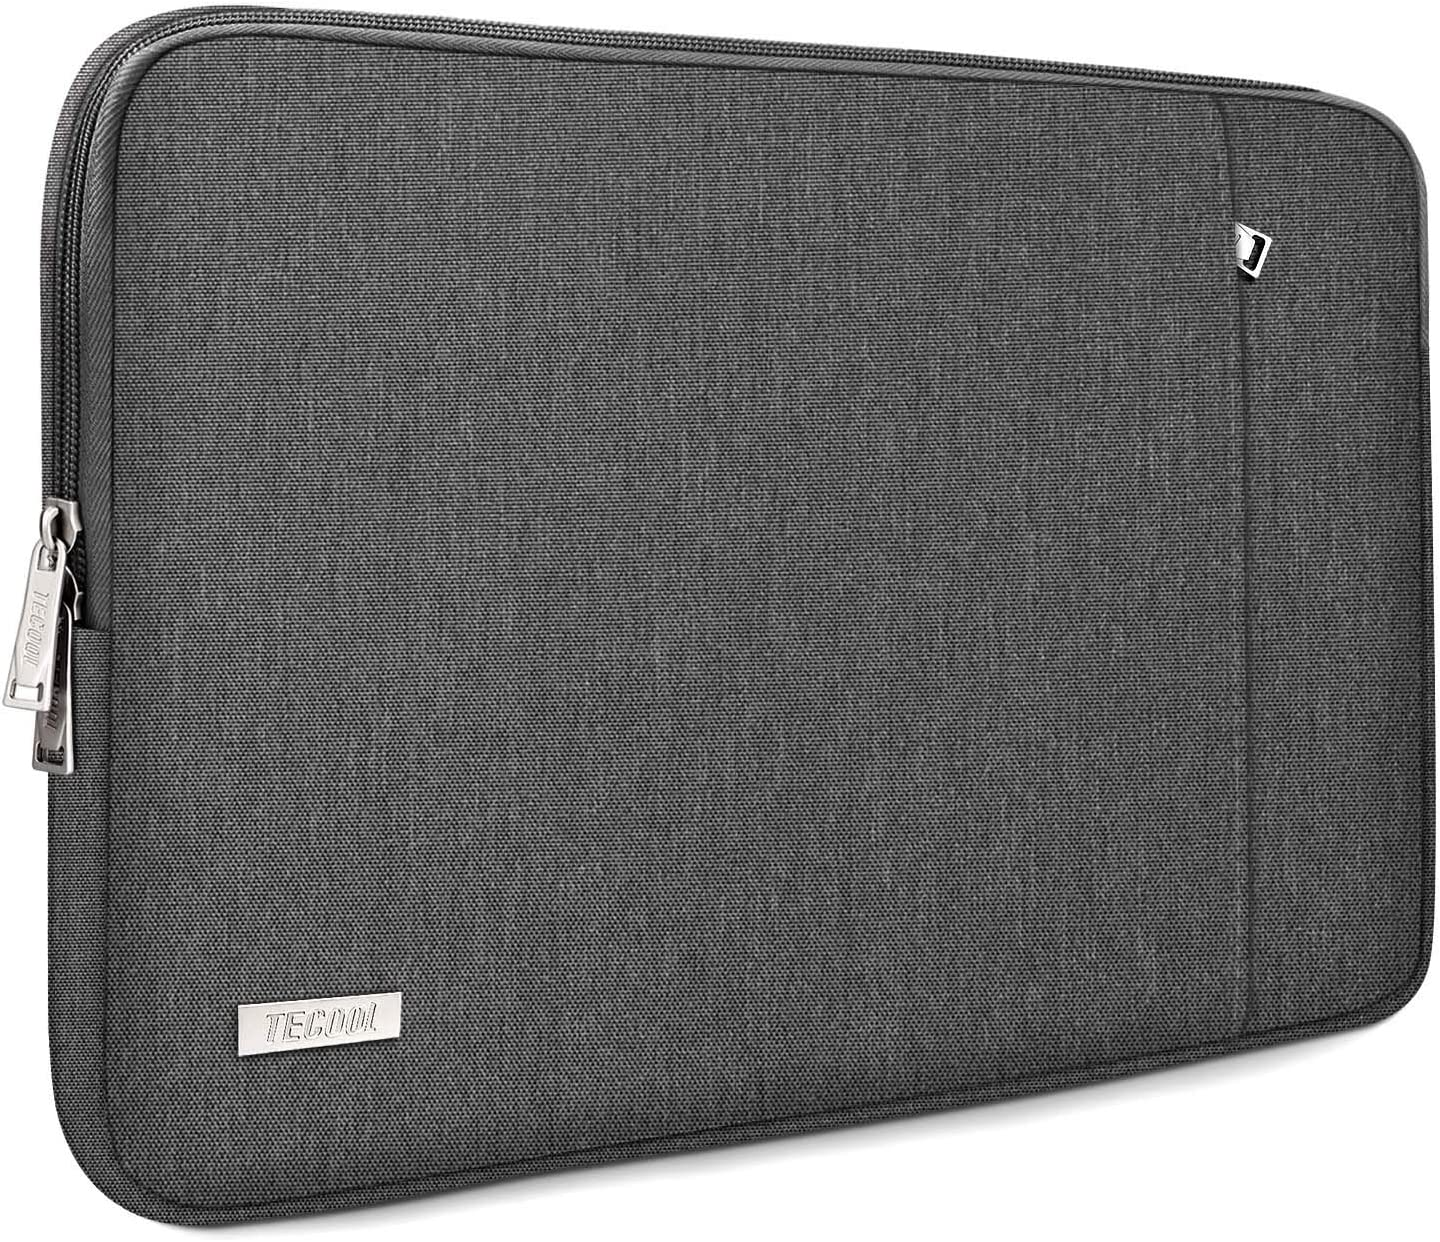 "TECOOL 14 Inch Laptop Sleeve for Lenovo IdeaPad 3/Chromebook/ThinkPad 14"", HP Stream/Pavilion/Elitebook 14, Dell Inspiron 14, 15"" Surface Laptop 3, XPS 15 7590/9500, Samsung Notebook 9 15"", Dark Grey"